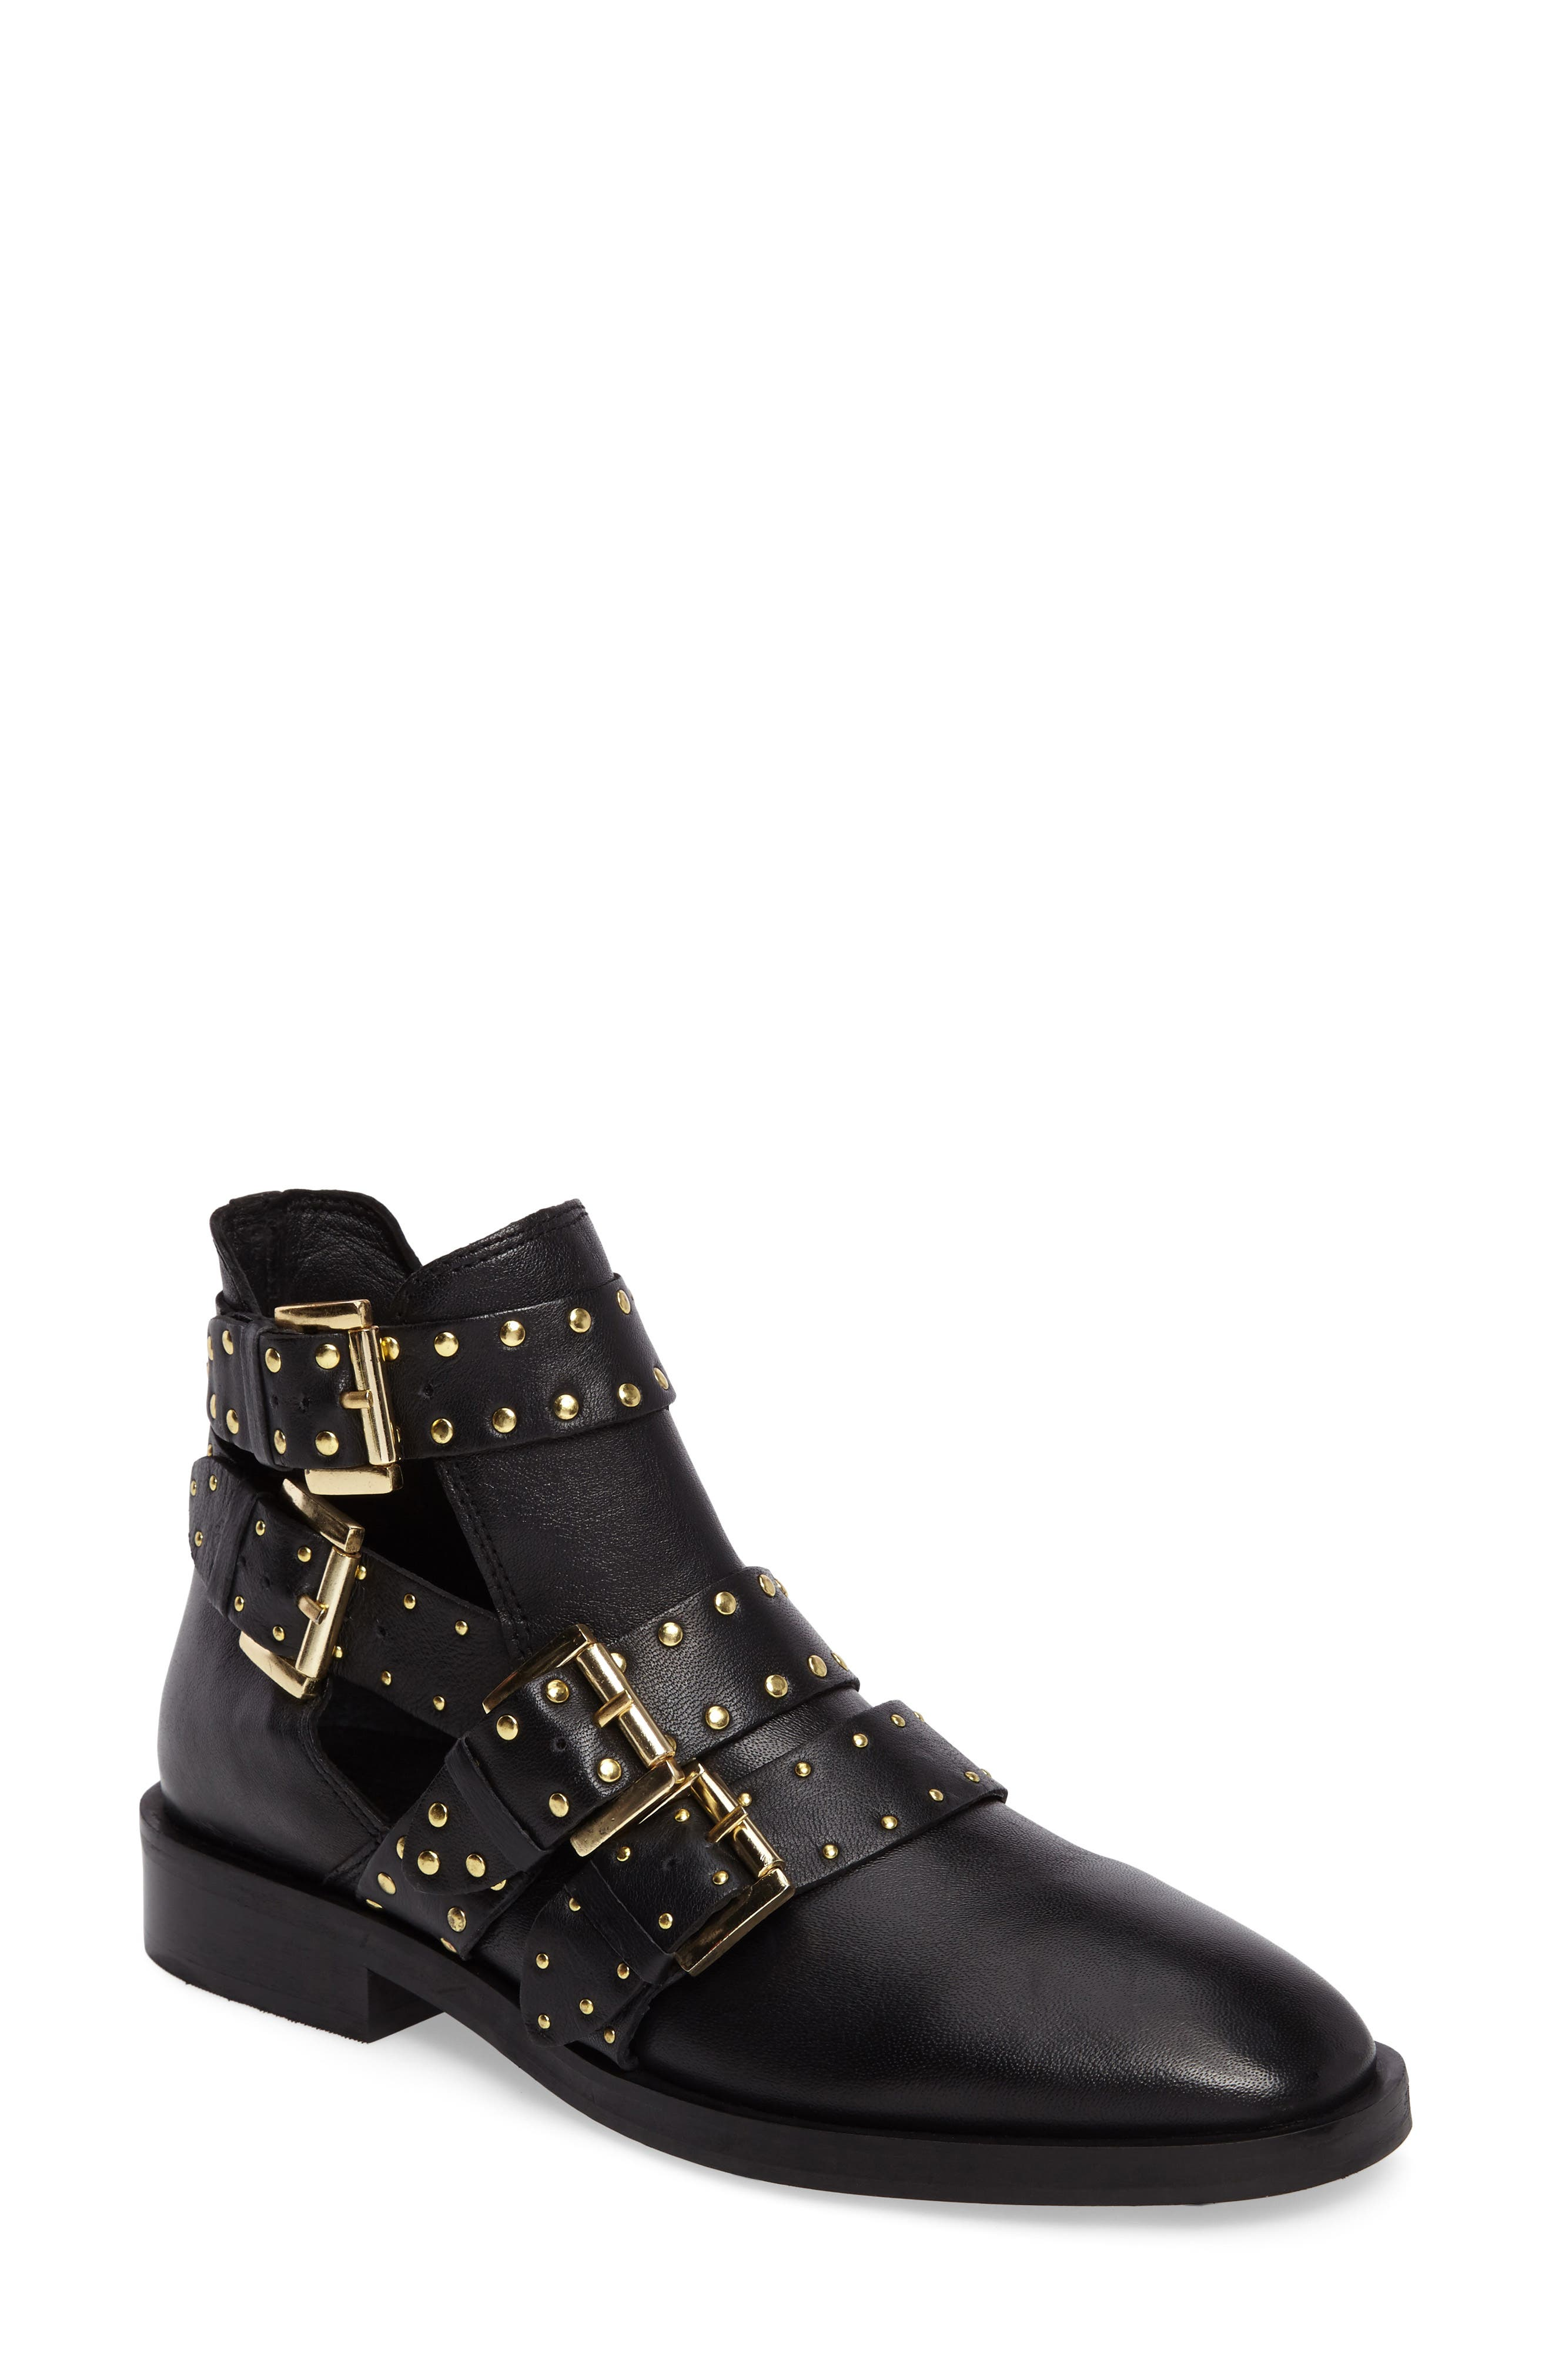 Alternate Image 1 Selected - Topshop Ark Studded Buckle Bootie (Women)